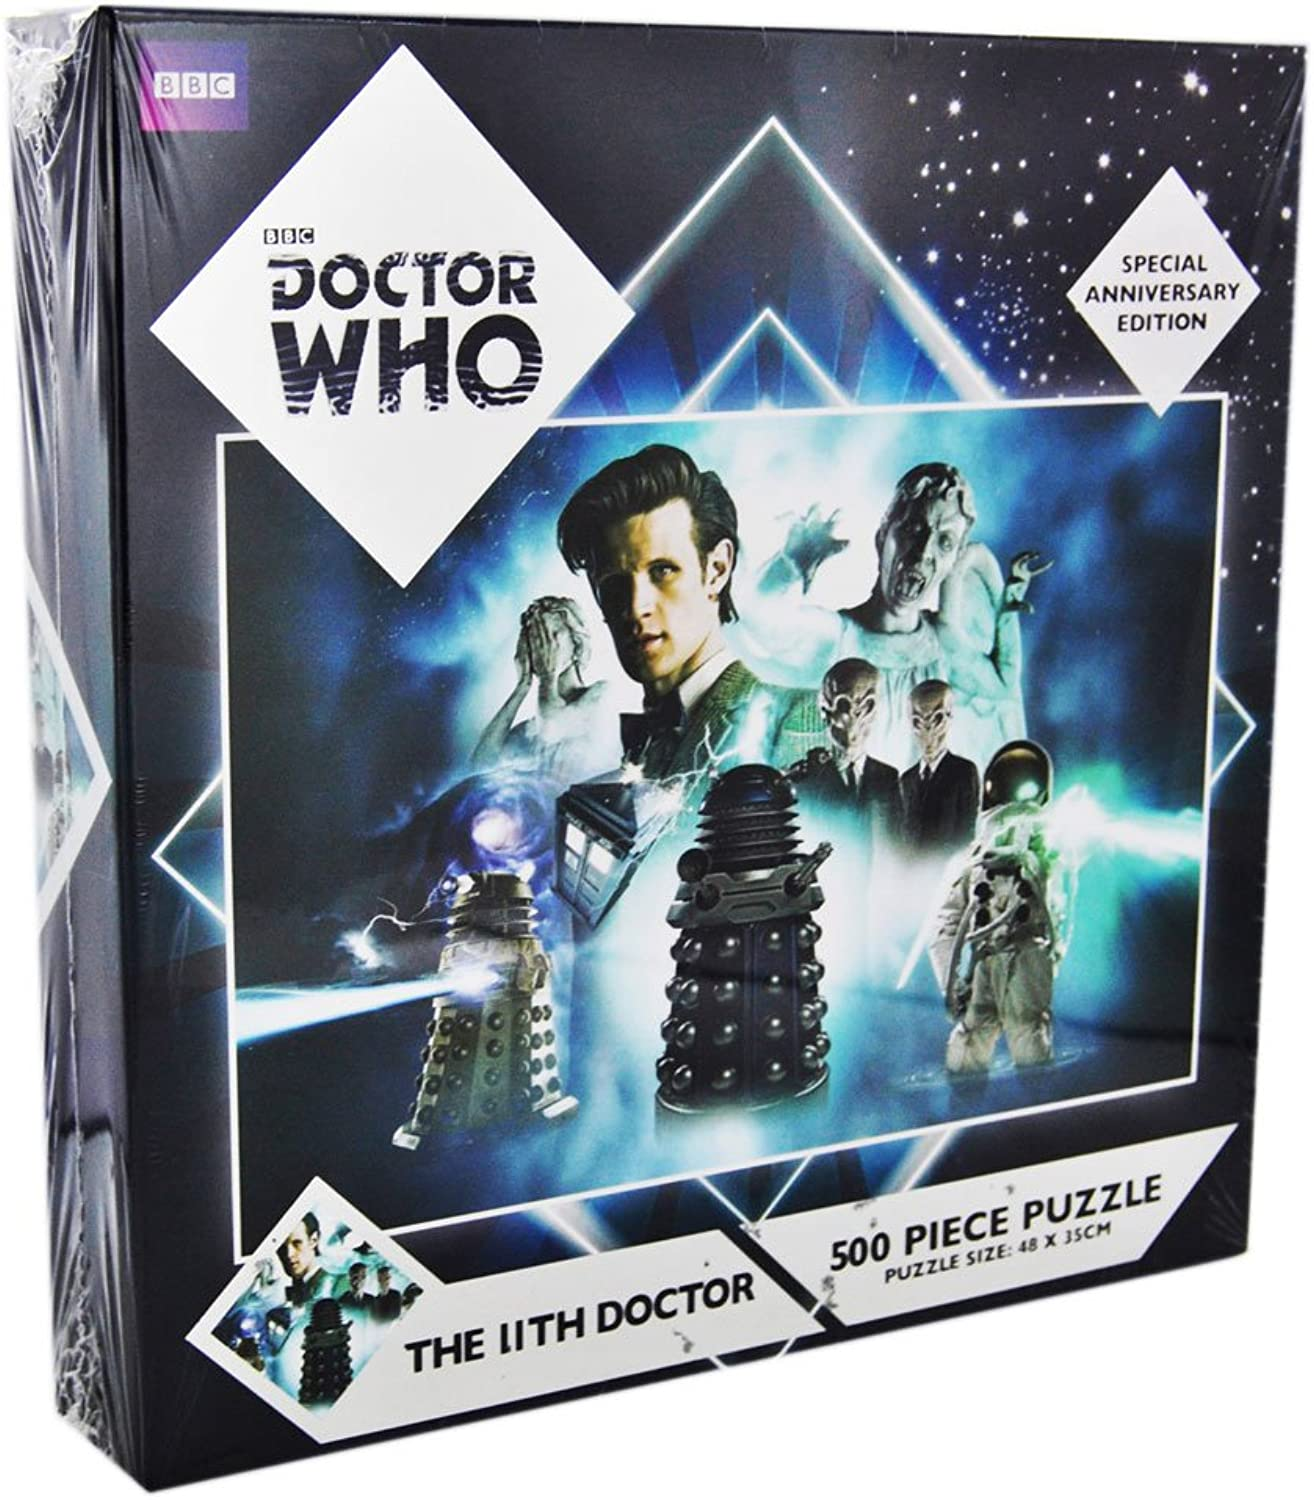 THE 11TH DOCTOR 500 PIECE PUZZLE SPECIAL ANNIVERSARY EDITION